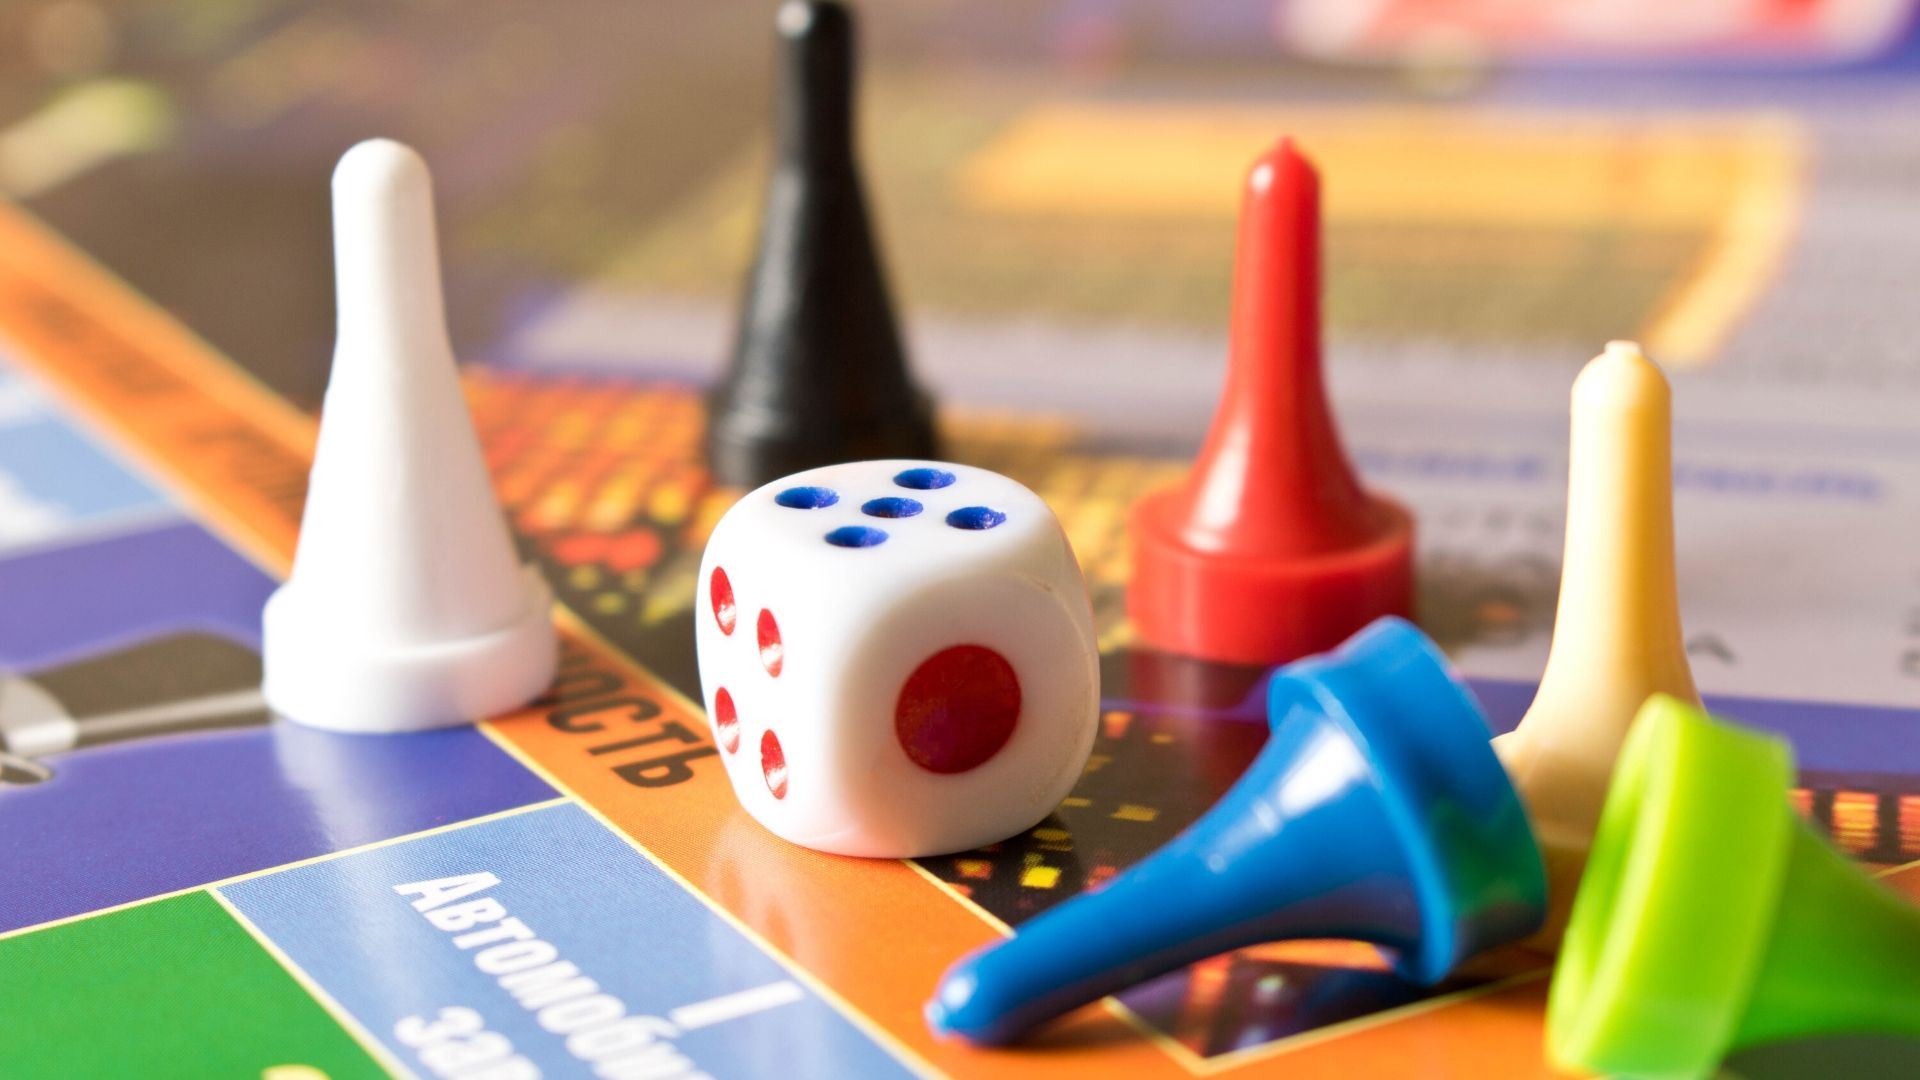 Family-friendly Games to Play Together